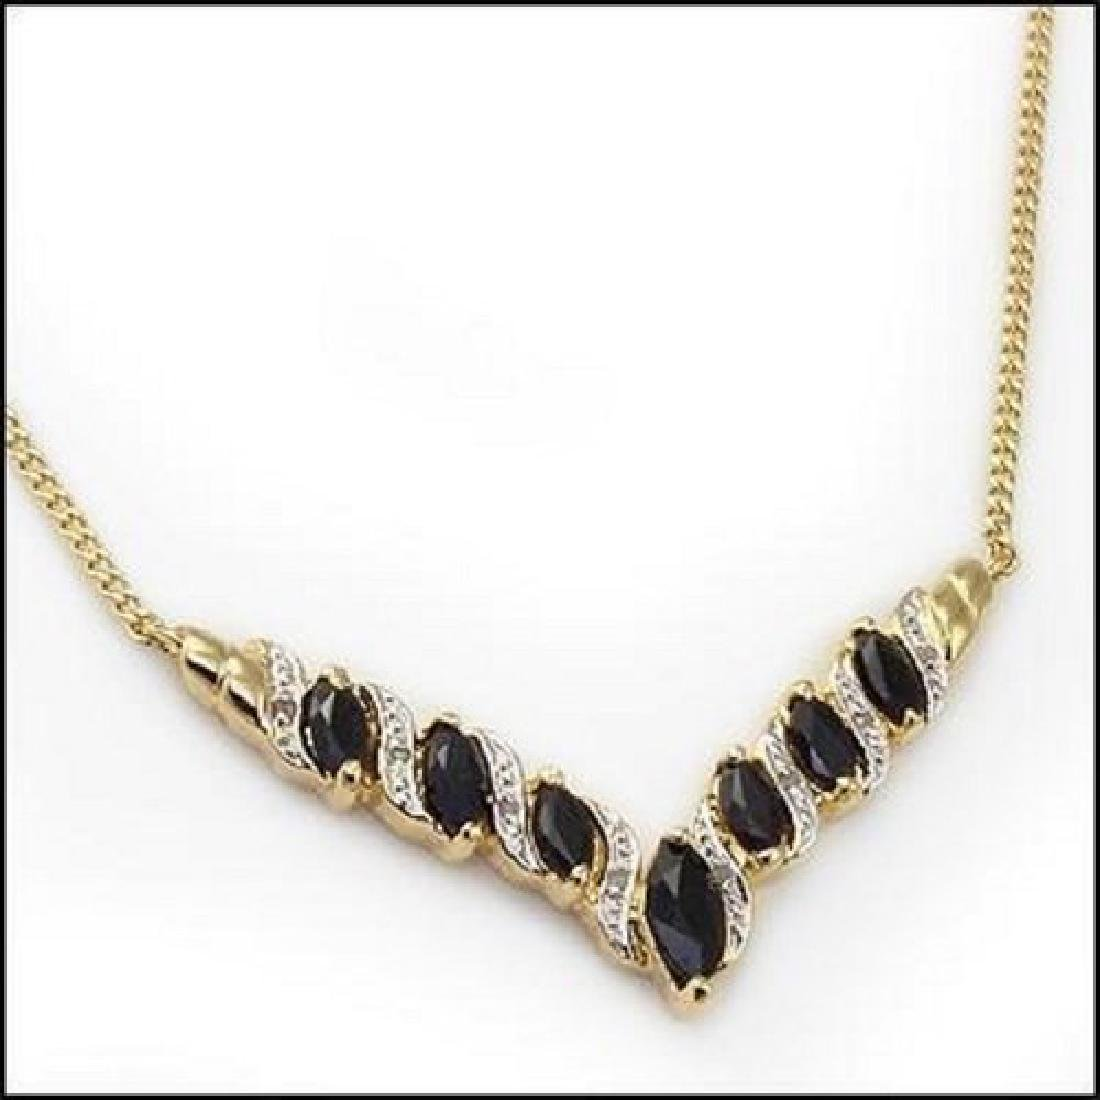 6.92 CT Sapphire & Diamond Designer Necklace MSRP $1120